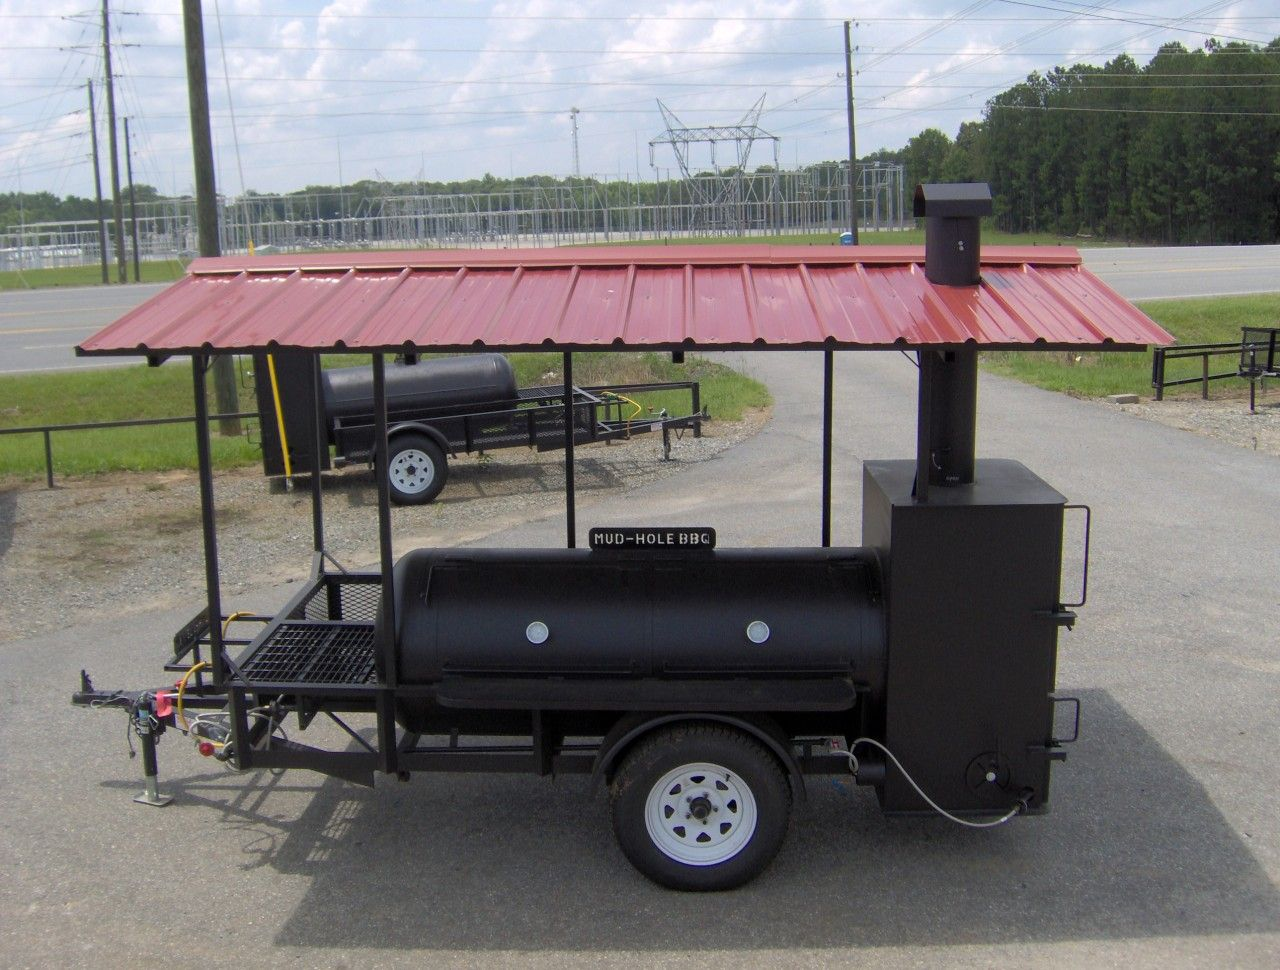 250 gal grill with canopy rib box, fish fryer and storage